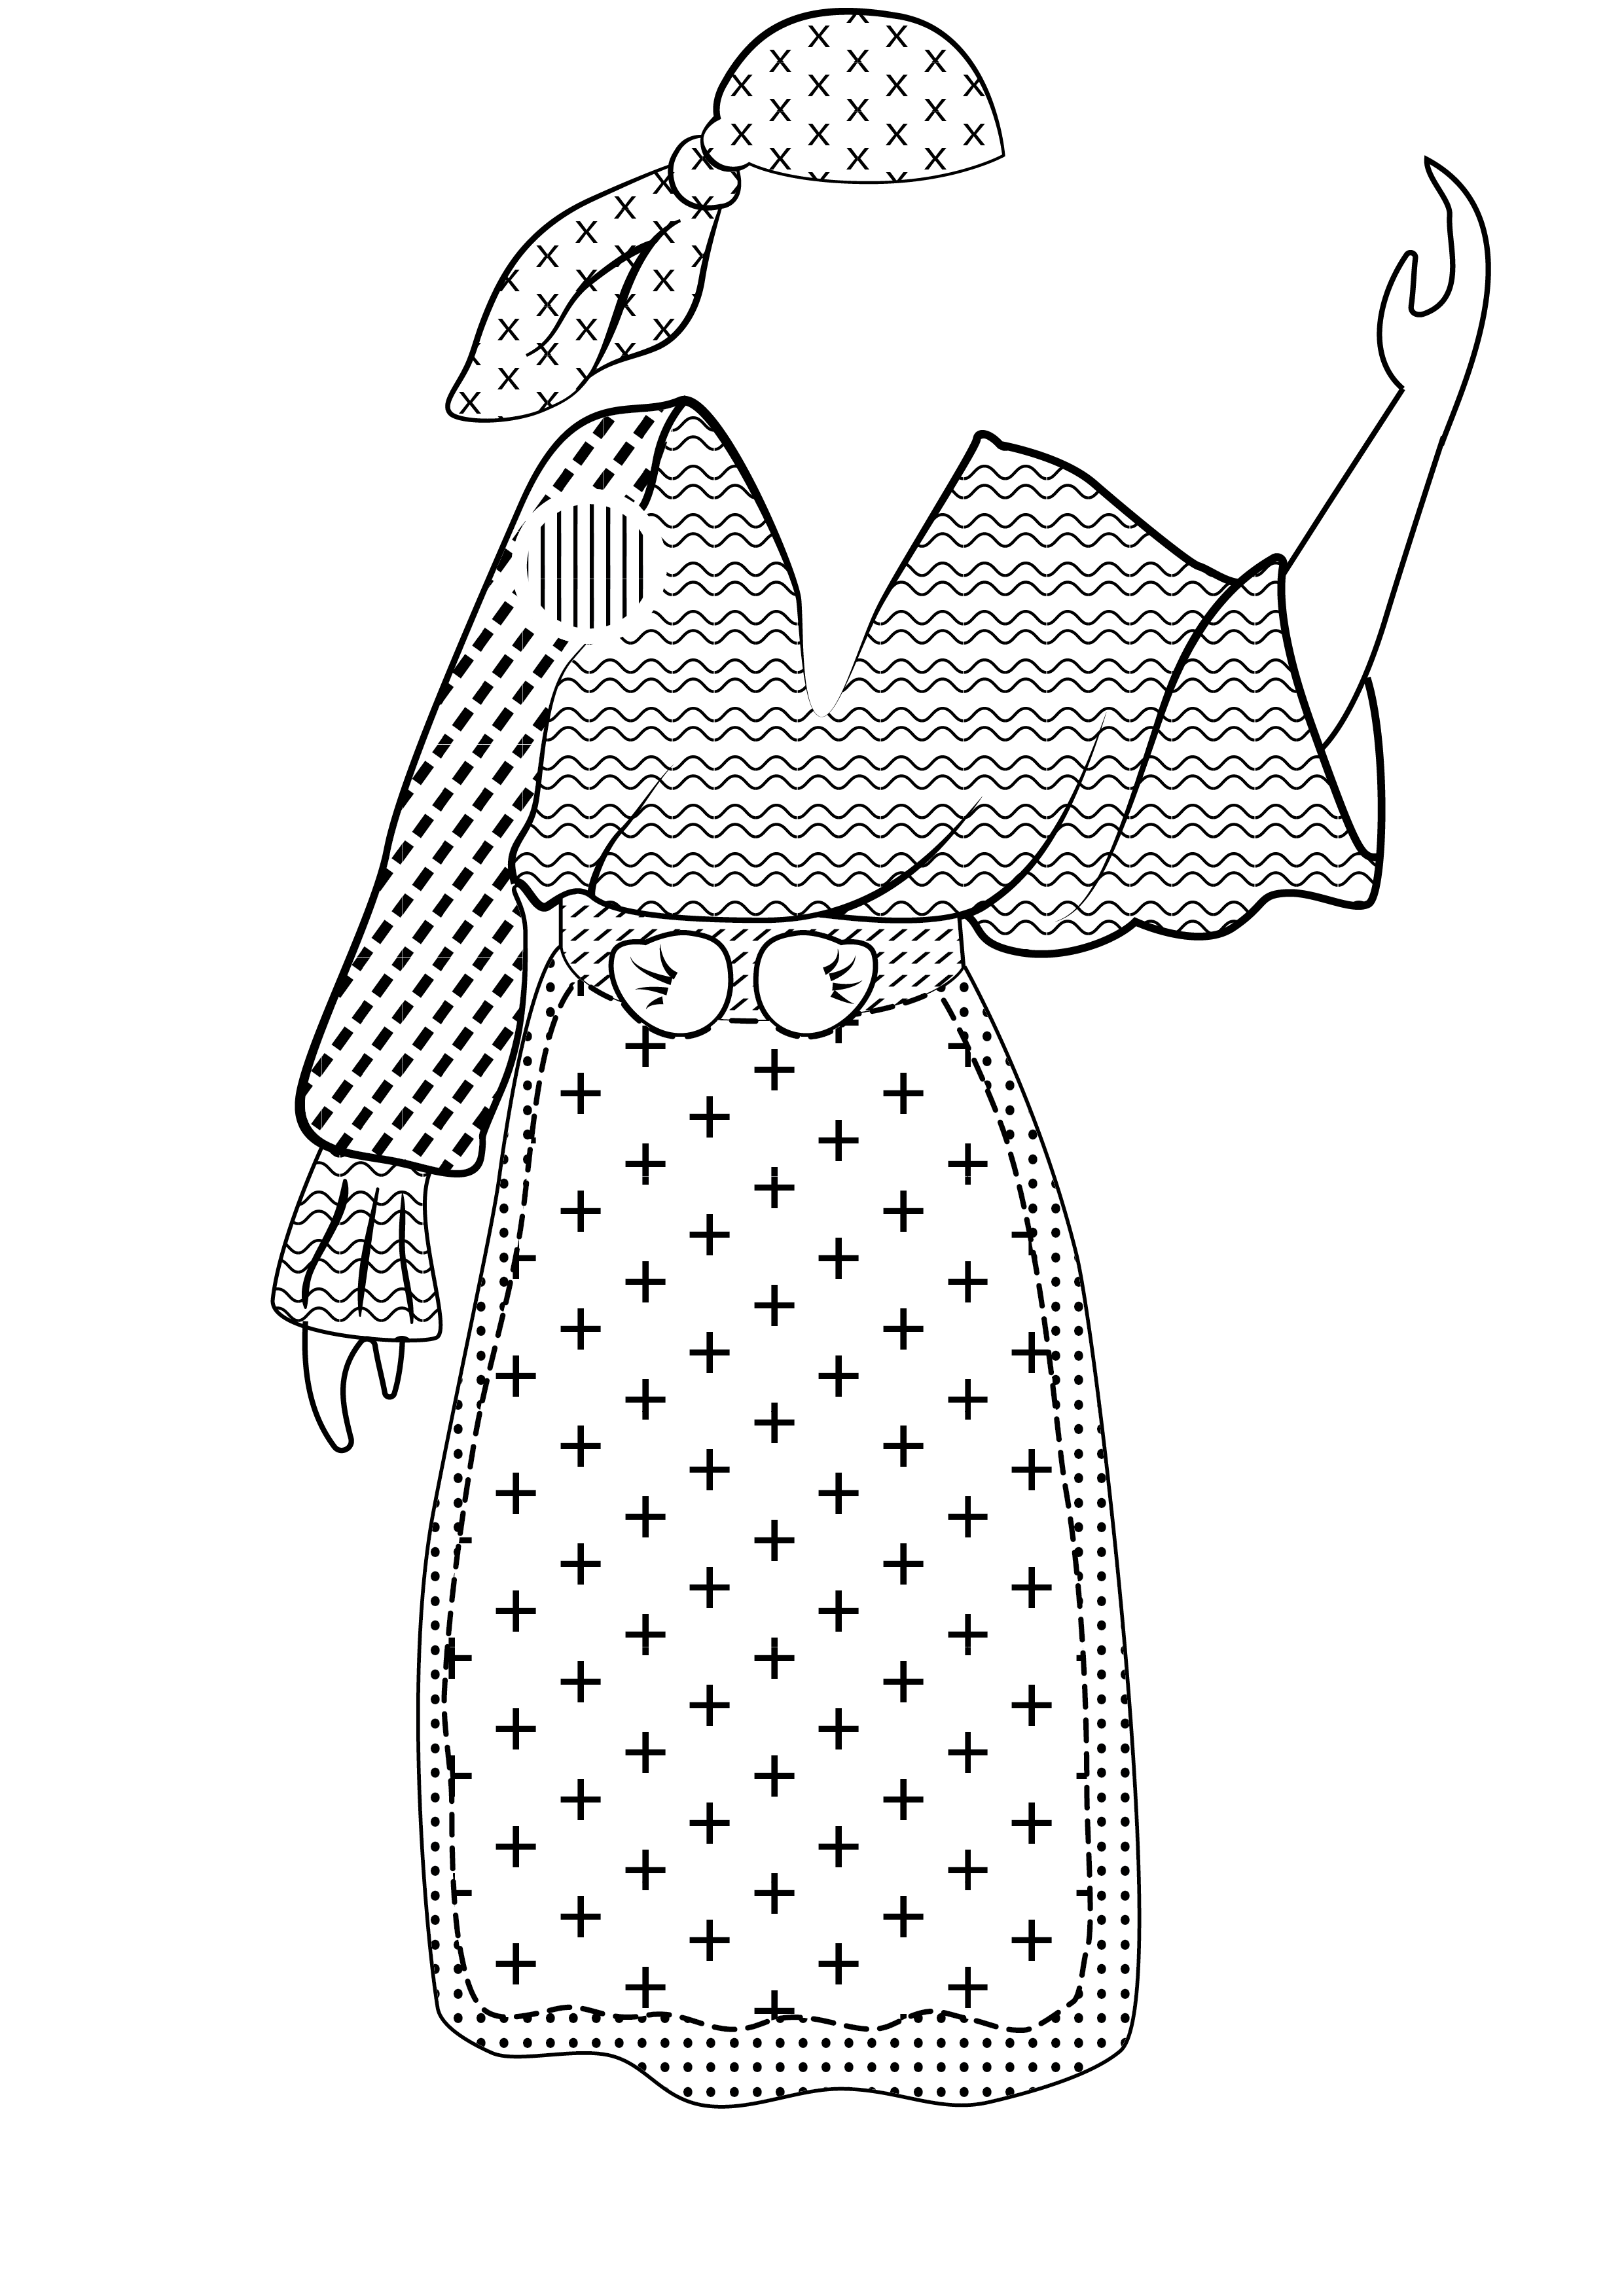 queen mary's traditional costume